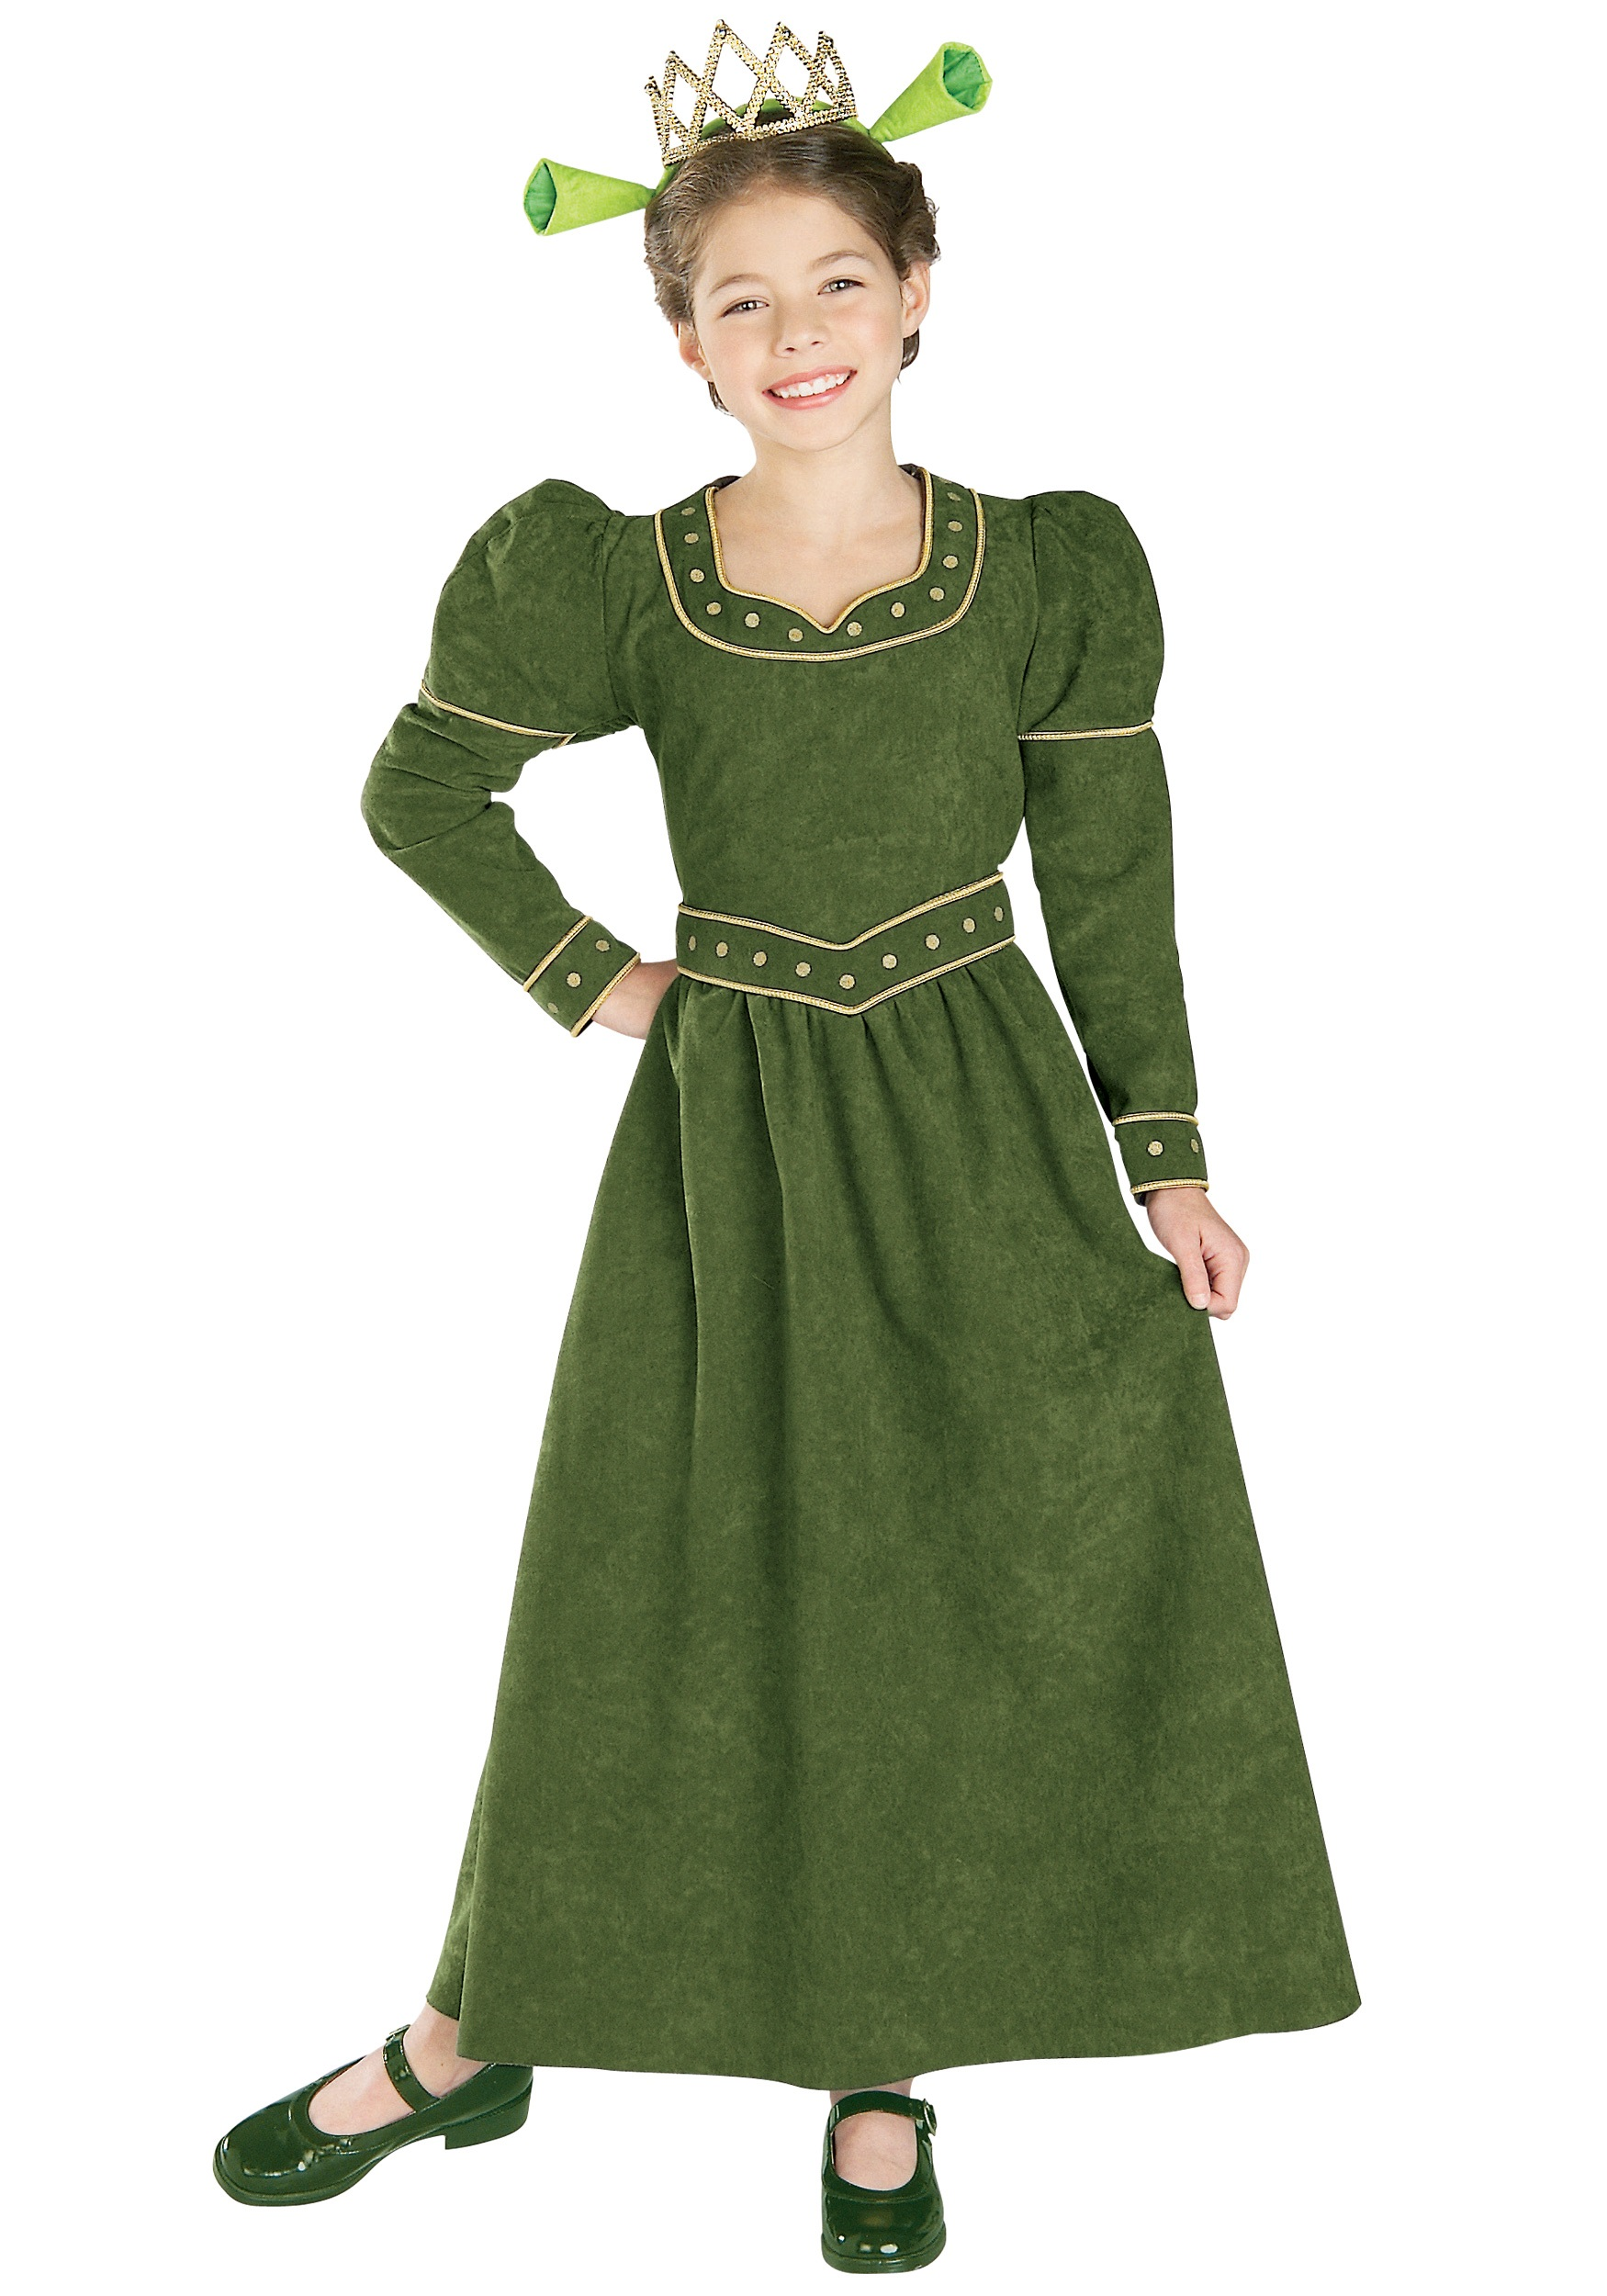 Deluxe Child Princess Fiona Costume  sc 1 st  Halloween Costumes & Deluxe Child Princess Fiona Costume - Halloween Costumes